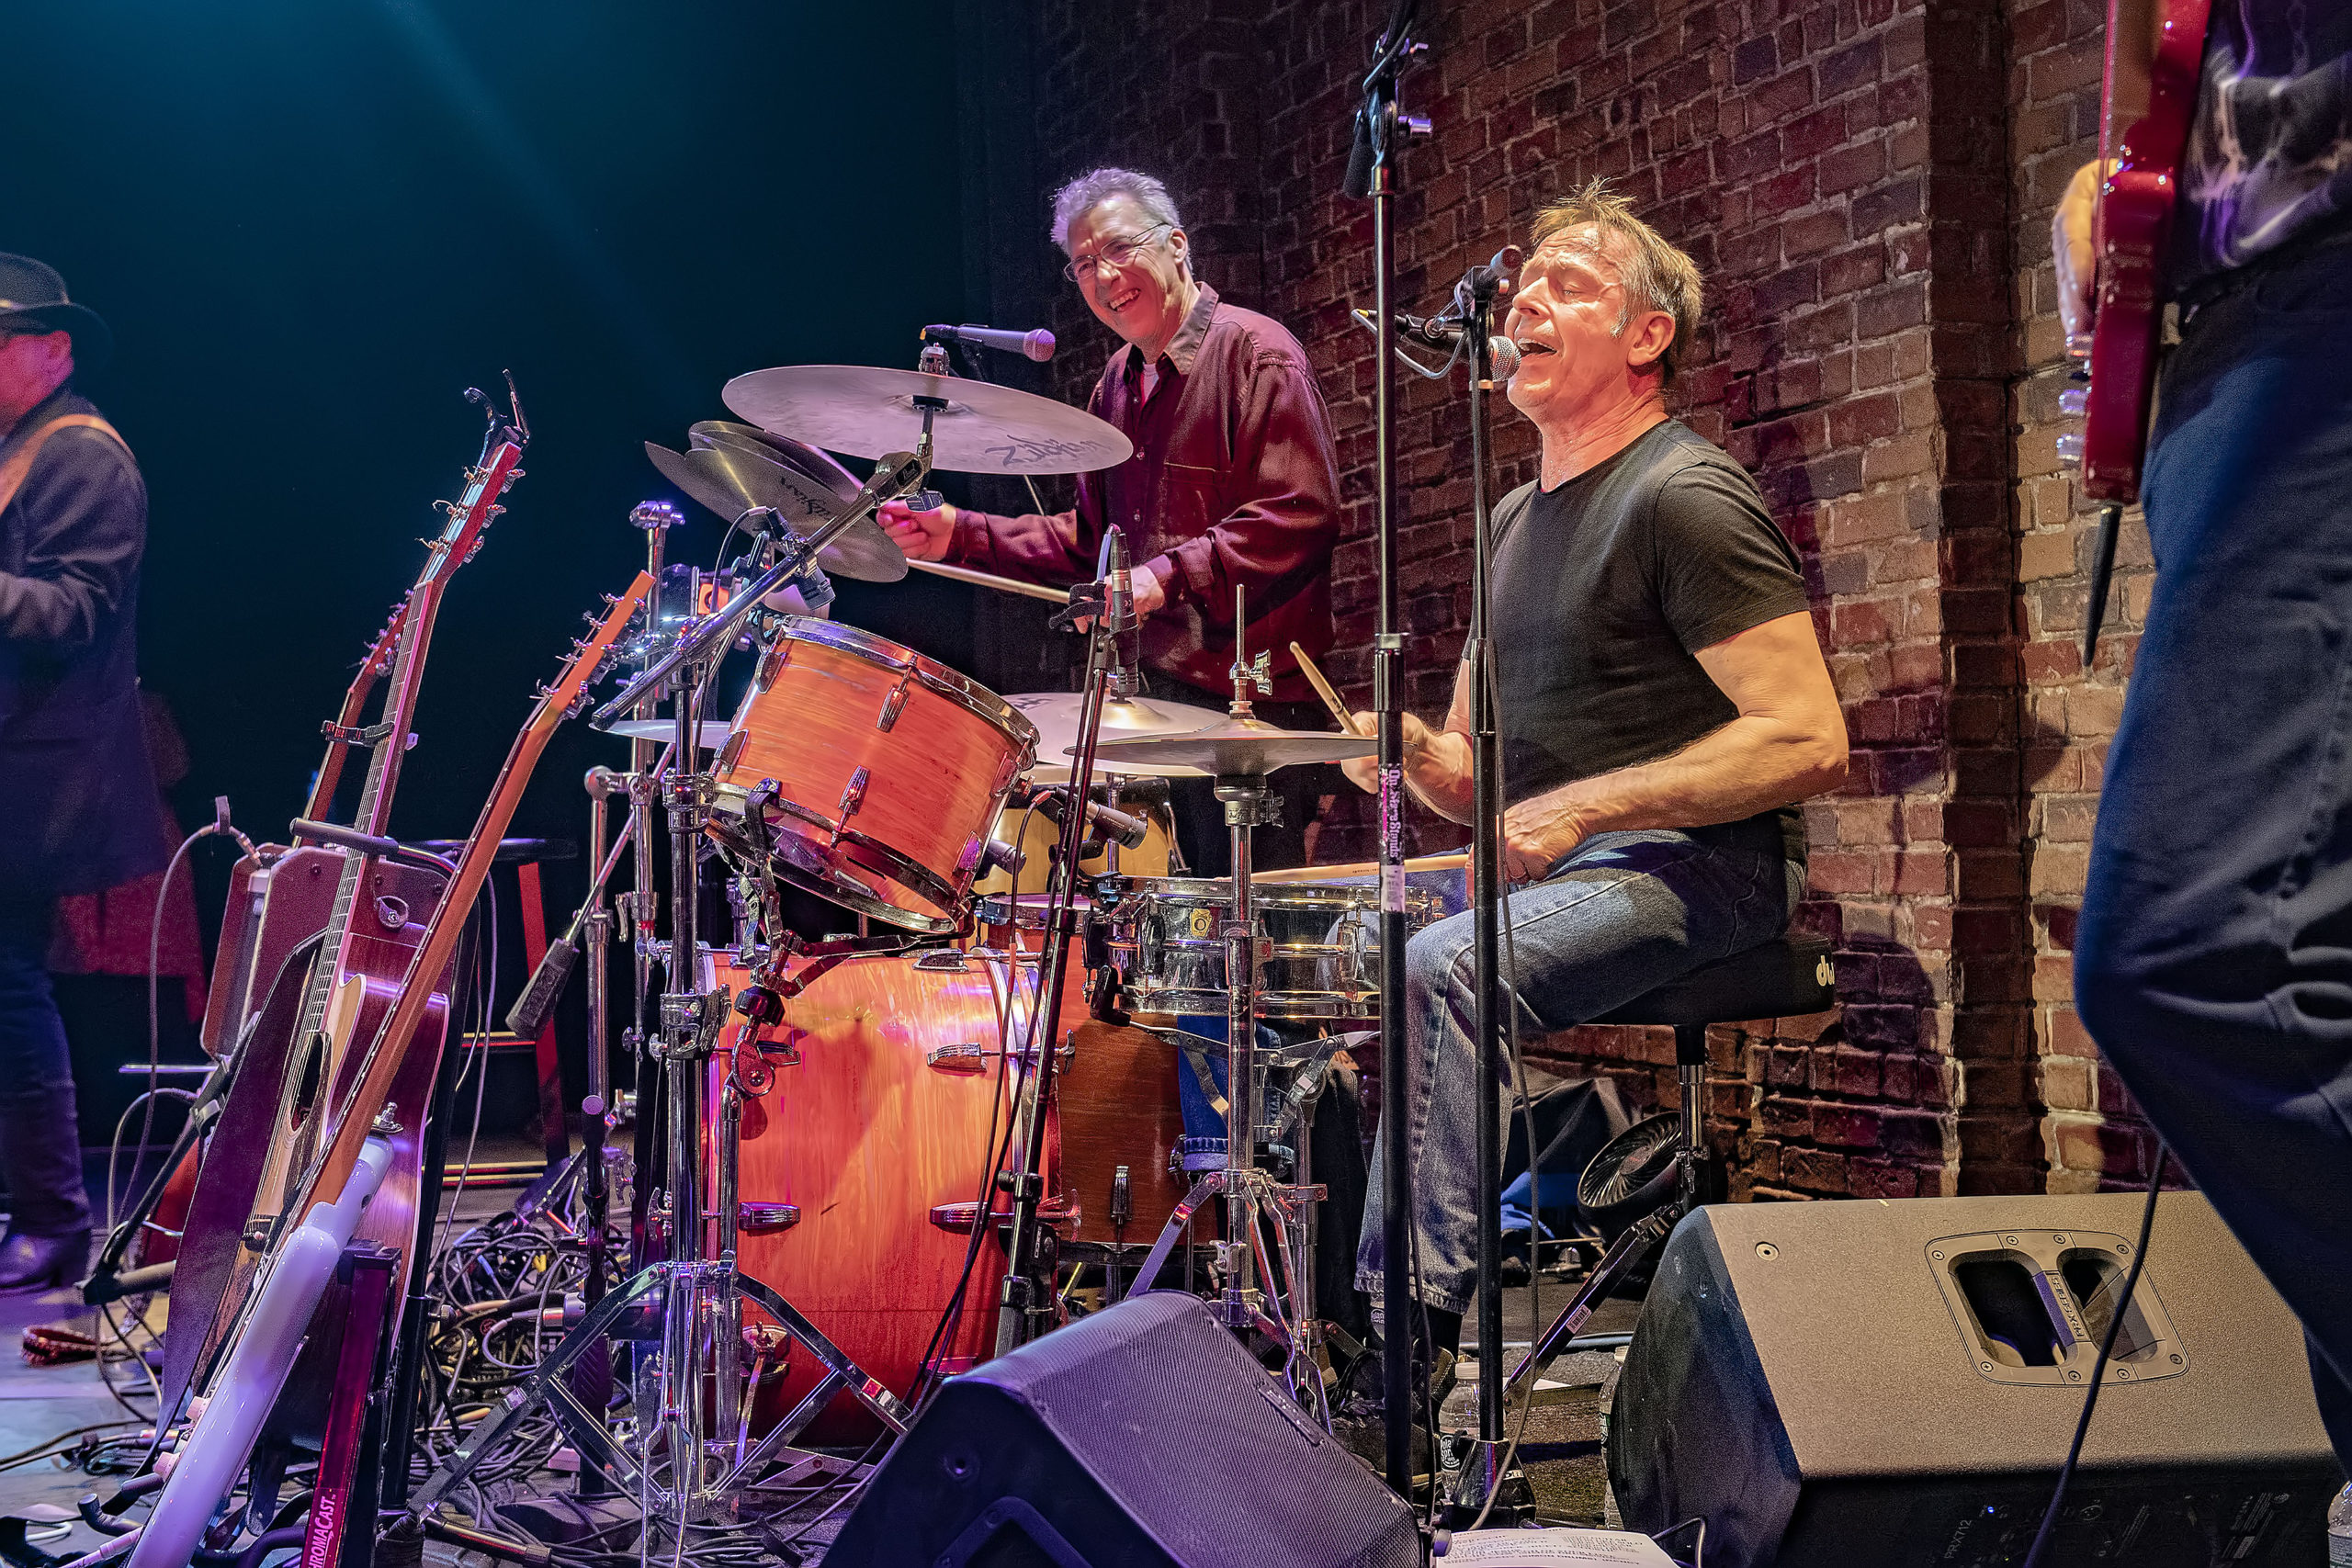 Nancy Atlas's special guest Simon Kirke on the drums at Bay Street Theater on Saturday, January 4, during the first Fireside Session of 2020 .